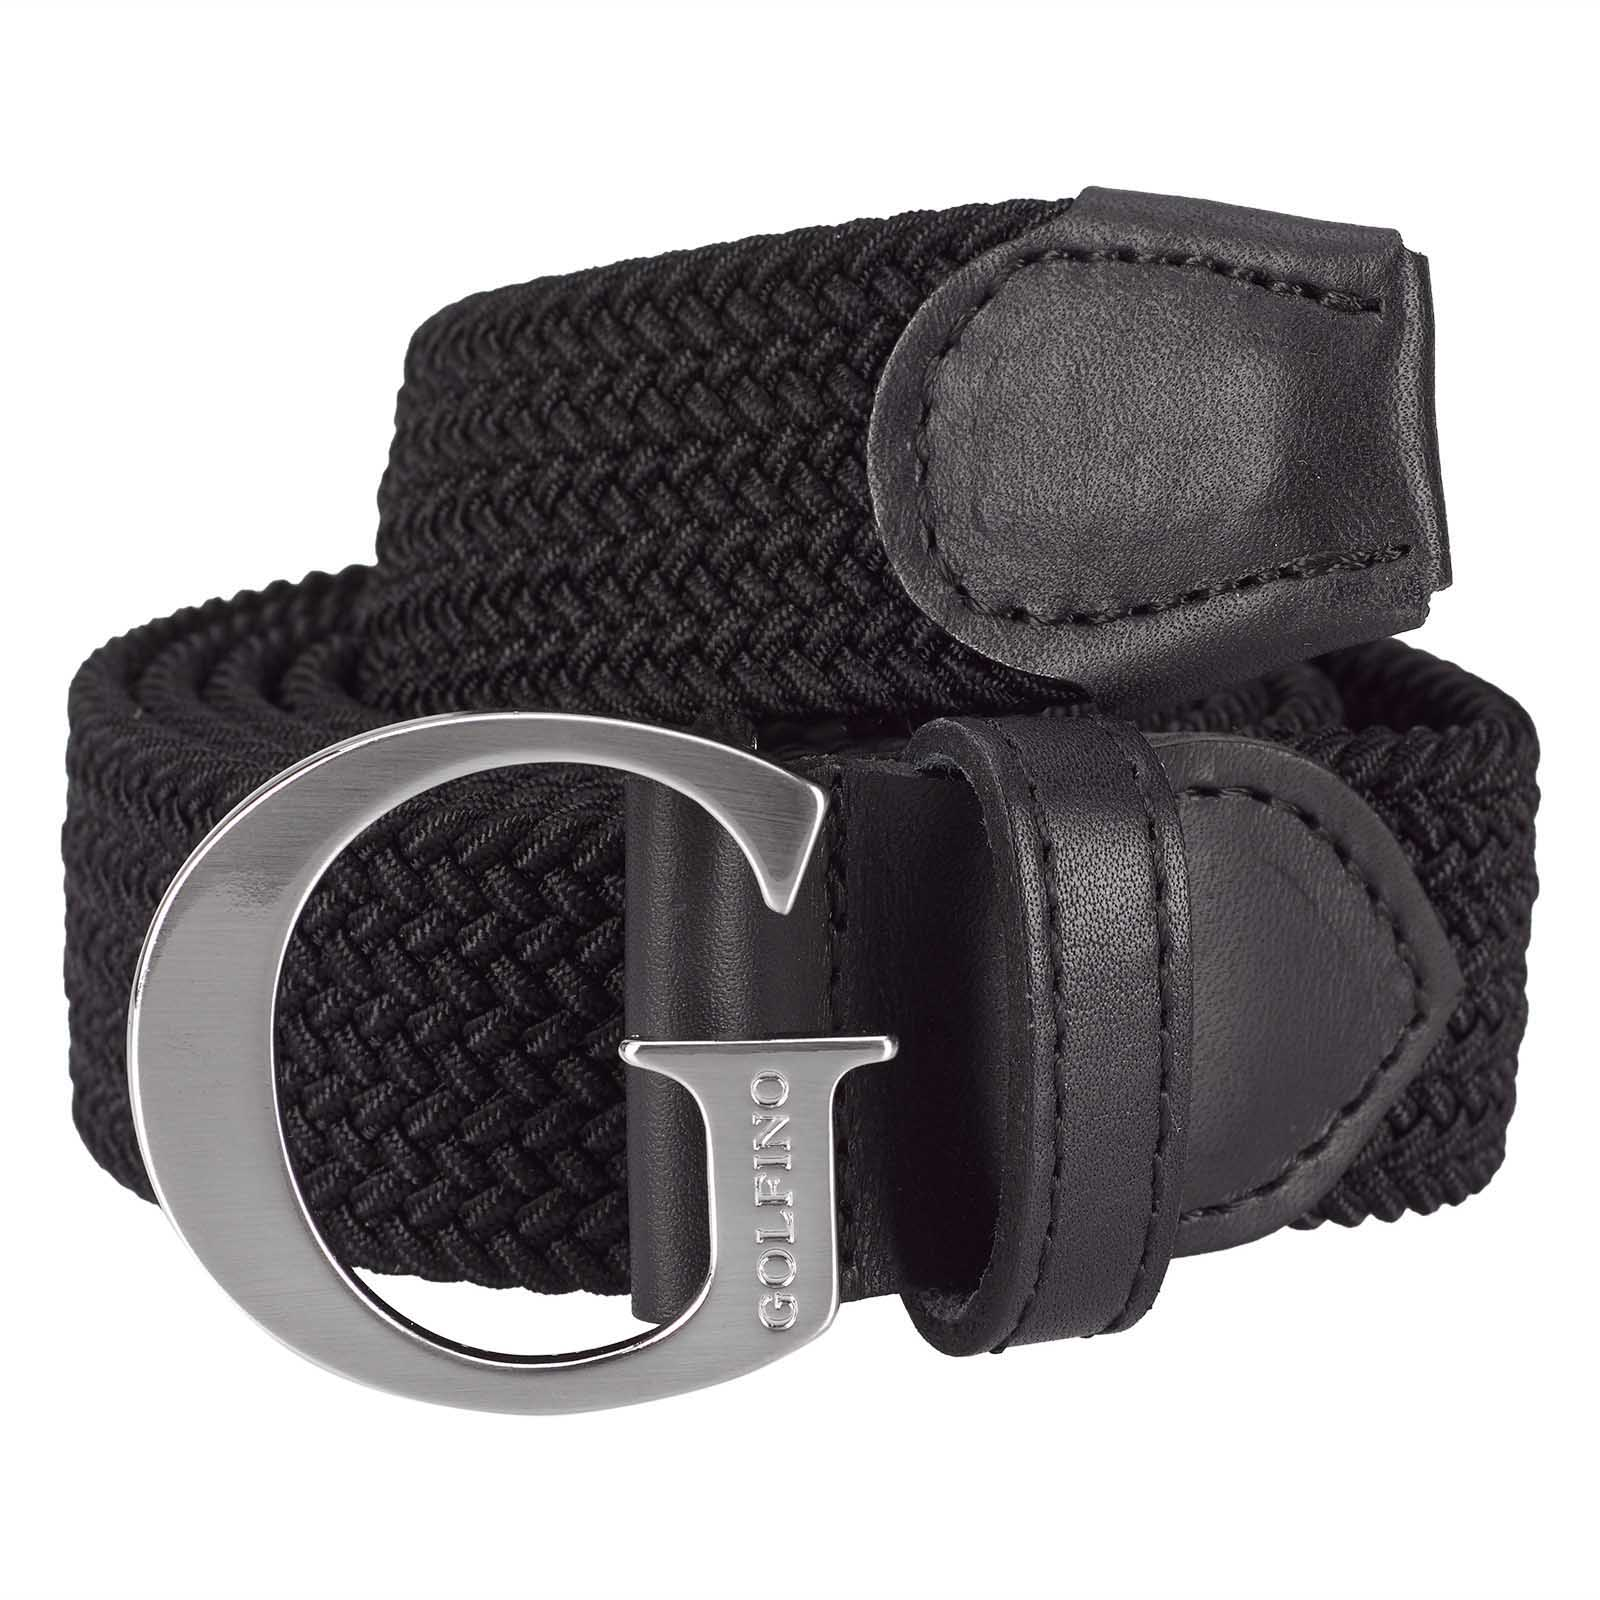 Ladies' leather golf belt with G-buckle and elastic element